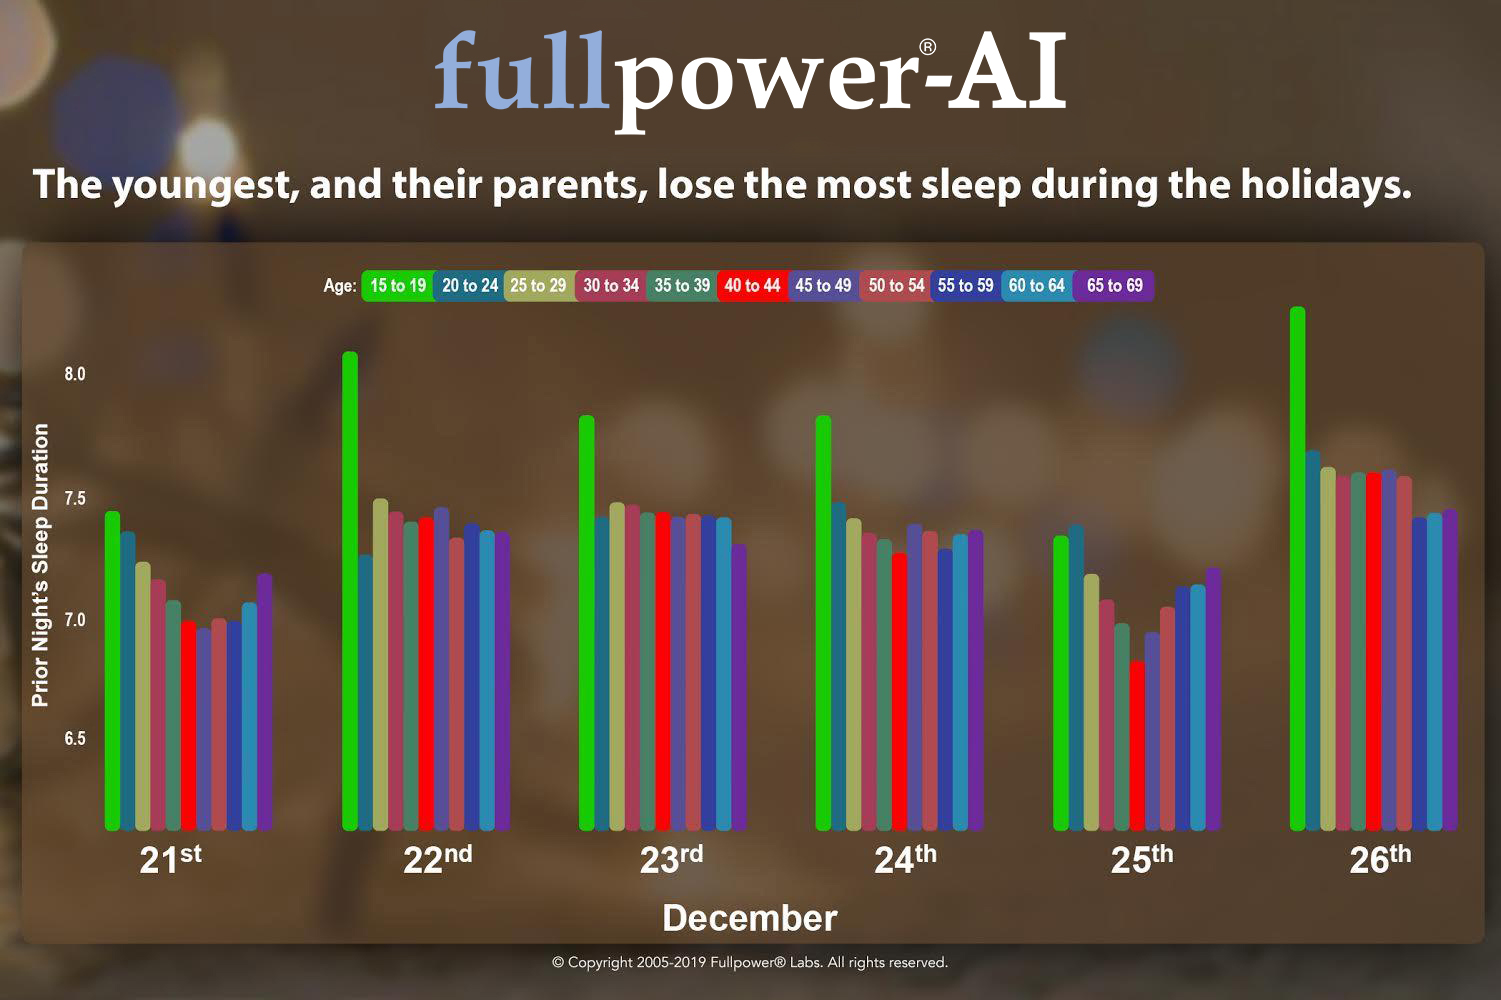 The youngest, and their parents, lose the most sleep during the holidays